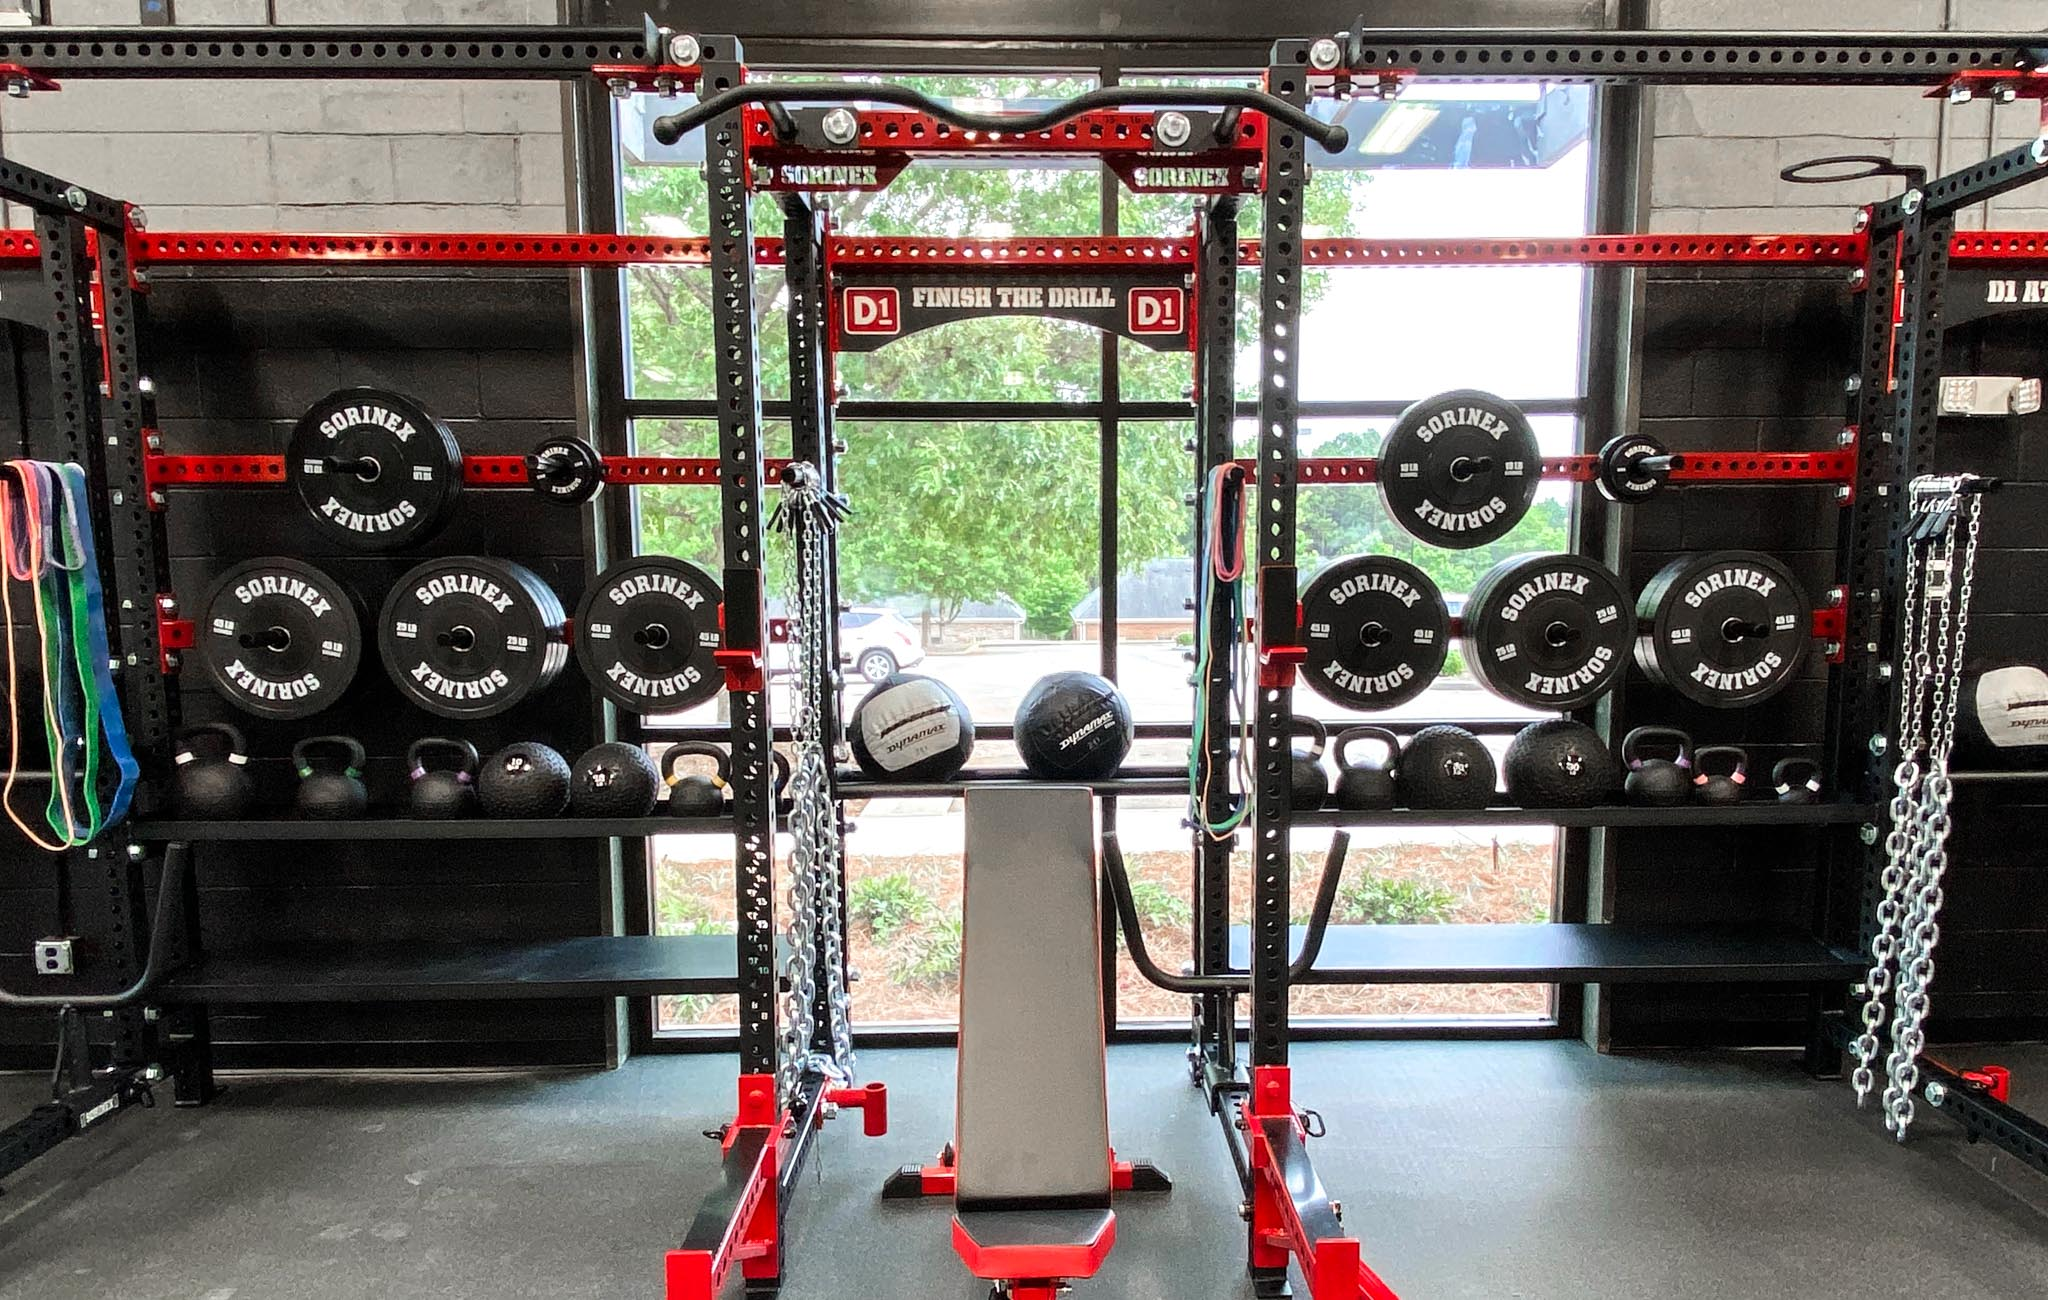 D1 Athens weight room